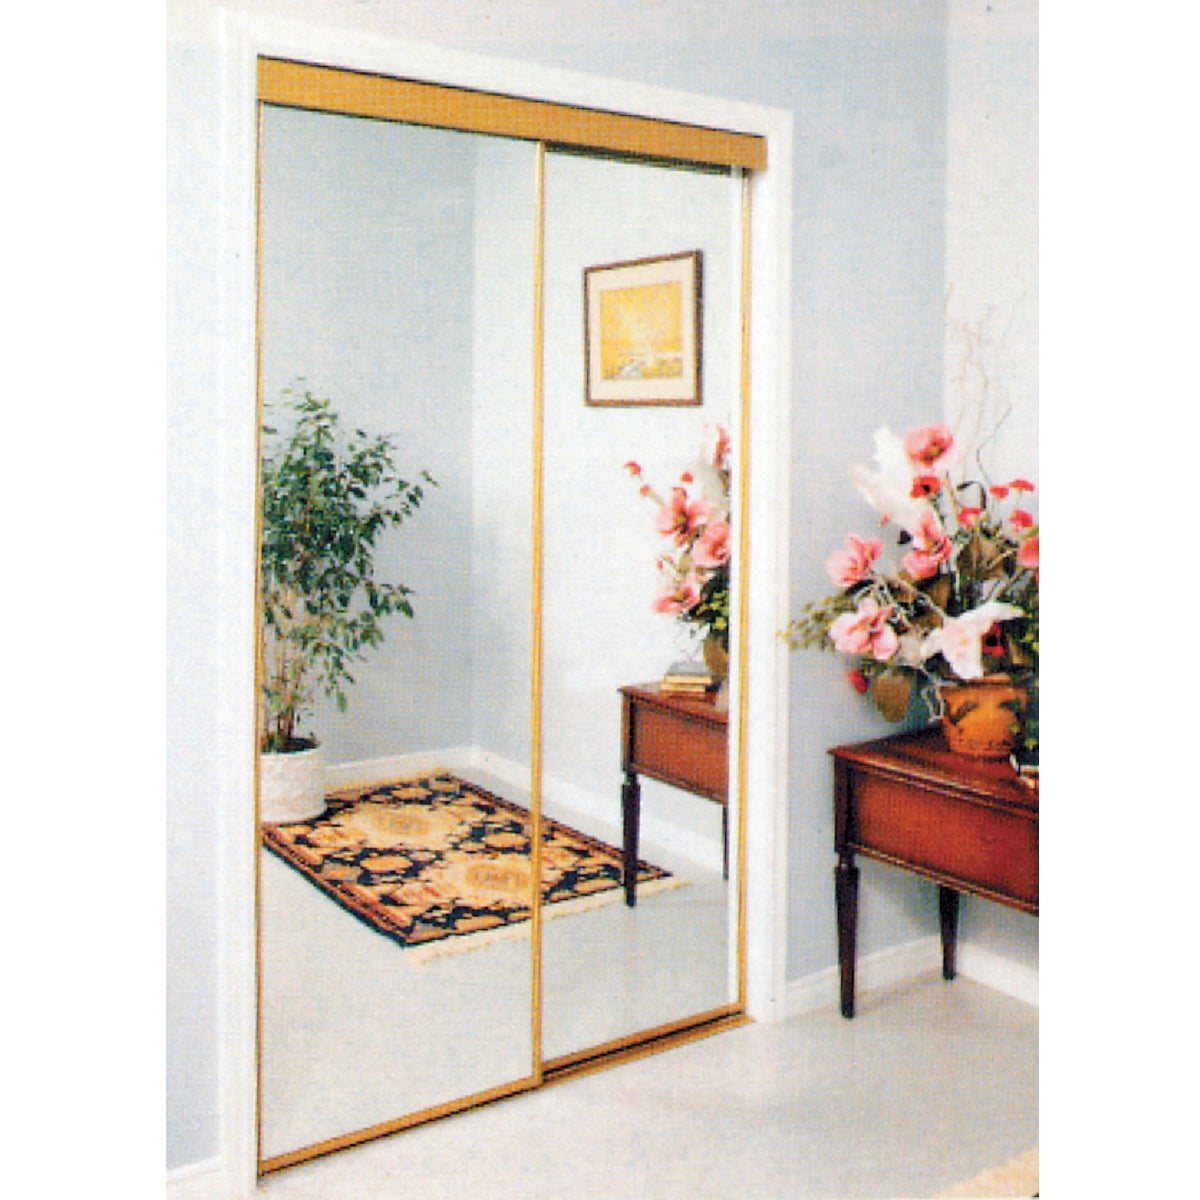 2002 59X80 GOLD BIPSS DR - 24-8004 by Home Decor Innov